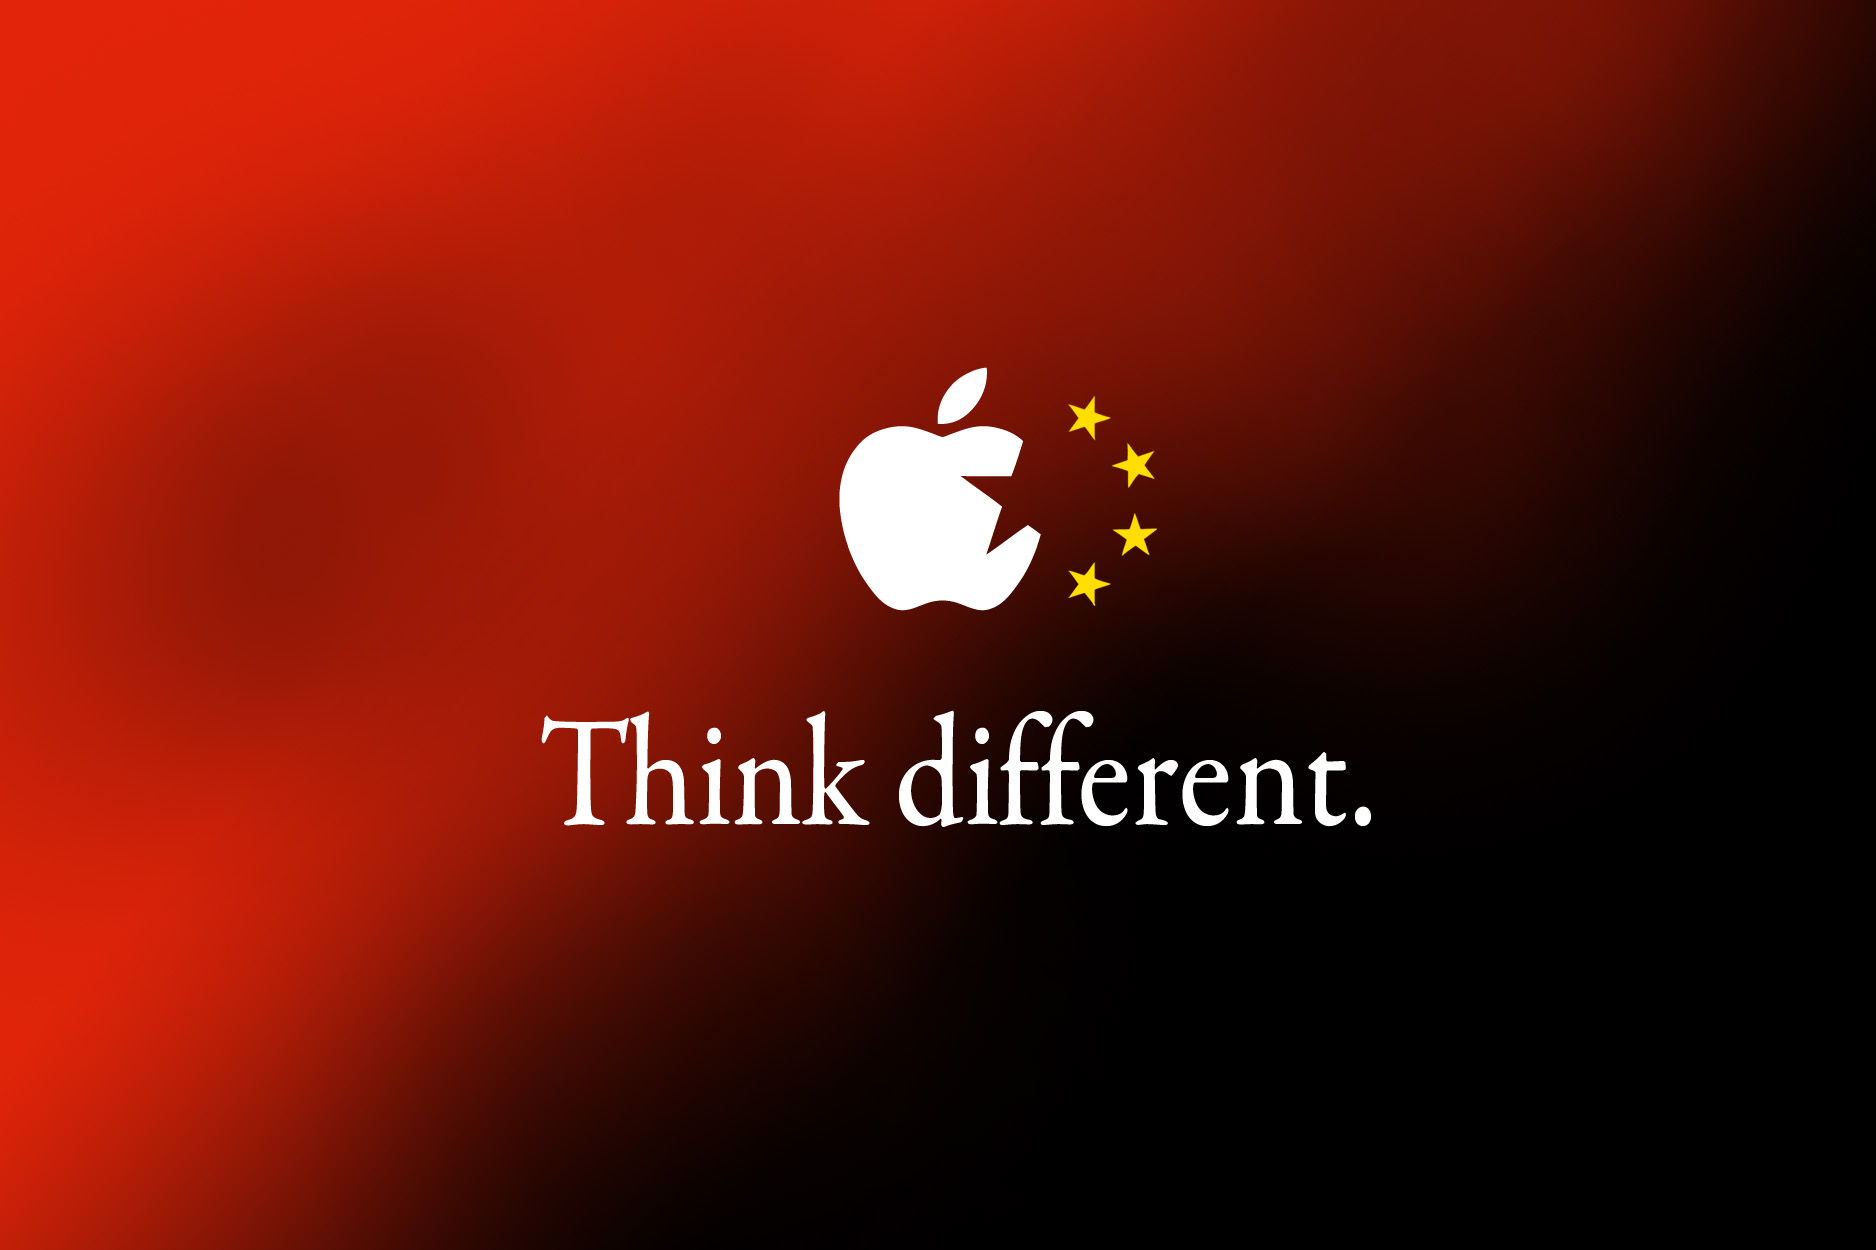 Apple's Media Event In China Should Feature Some Pretty Big News